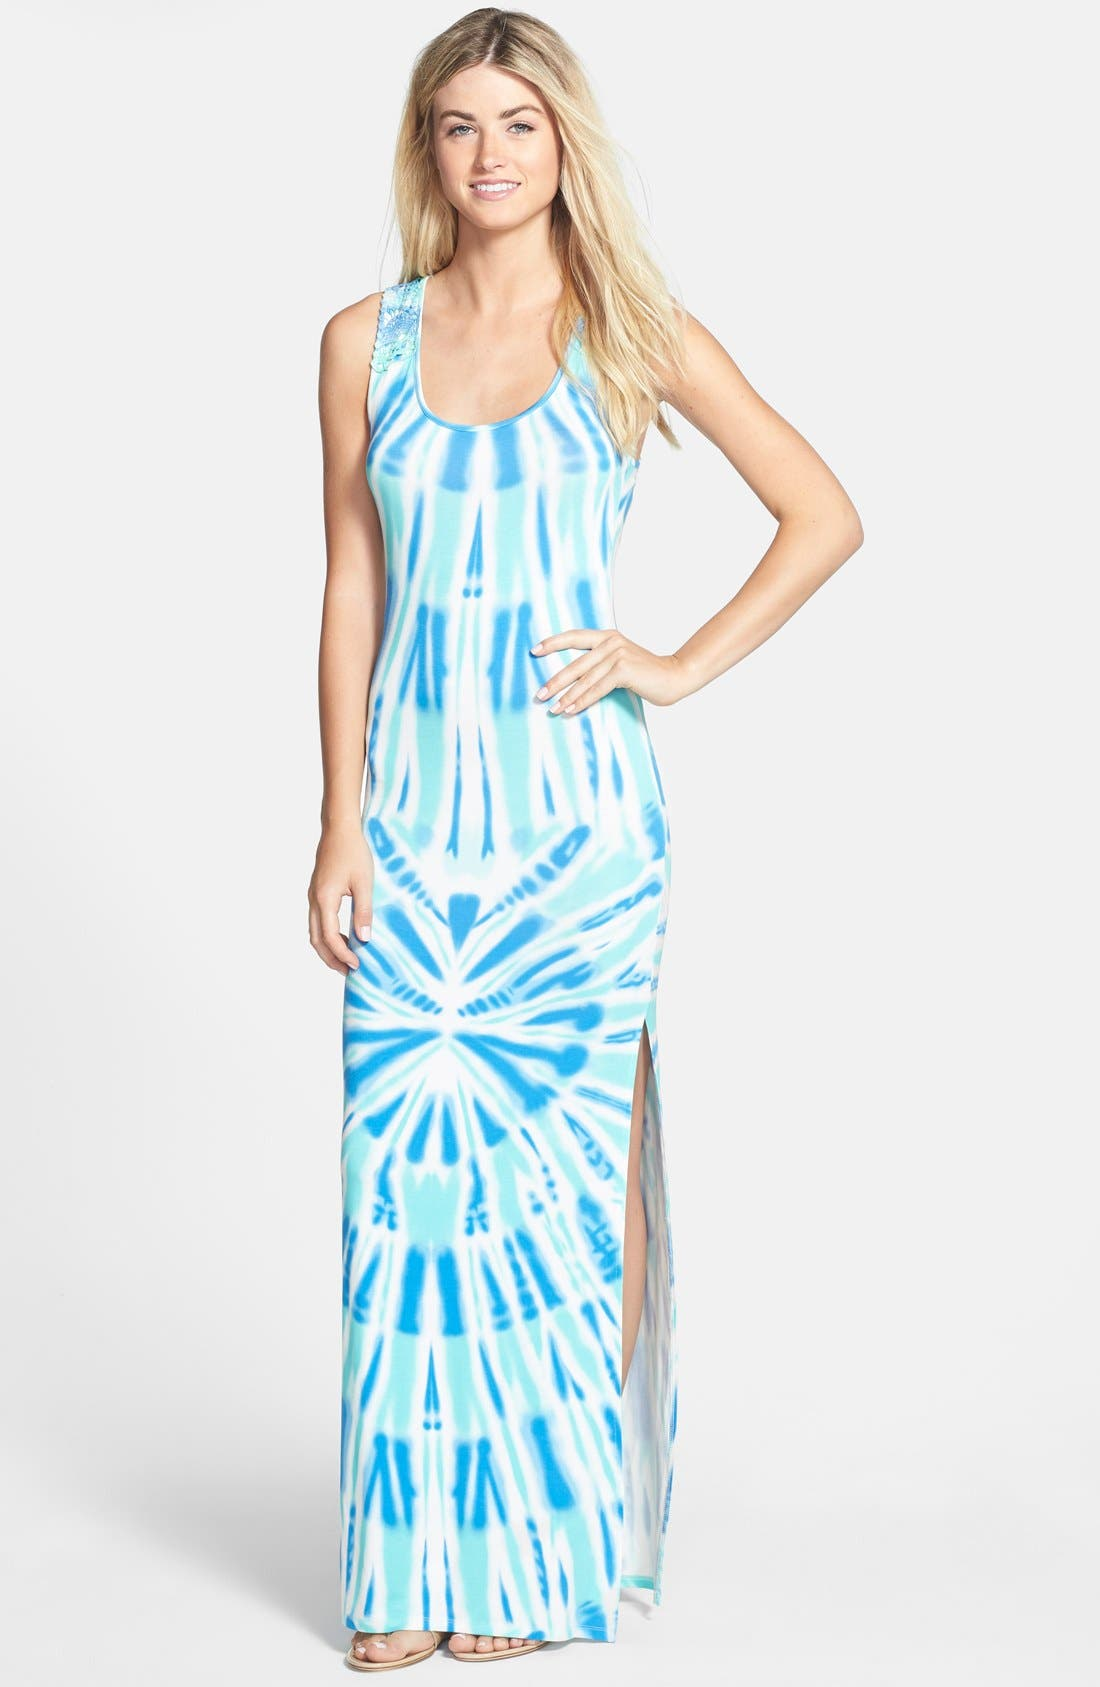 Alternate Image 1 Selected - Felicity & Coco Crochet Back Tie Dye Maxi Dress (Regular & Petite) (Nordstrom Exclusive)